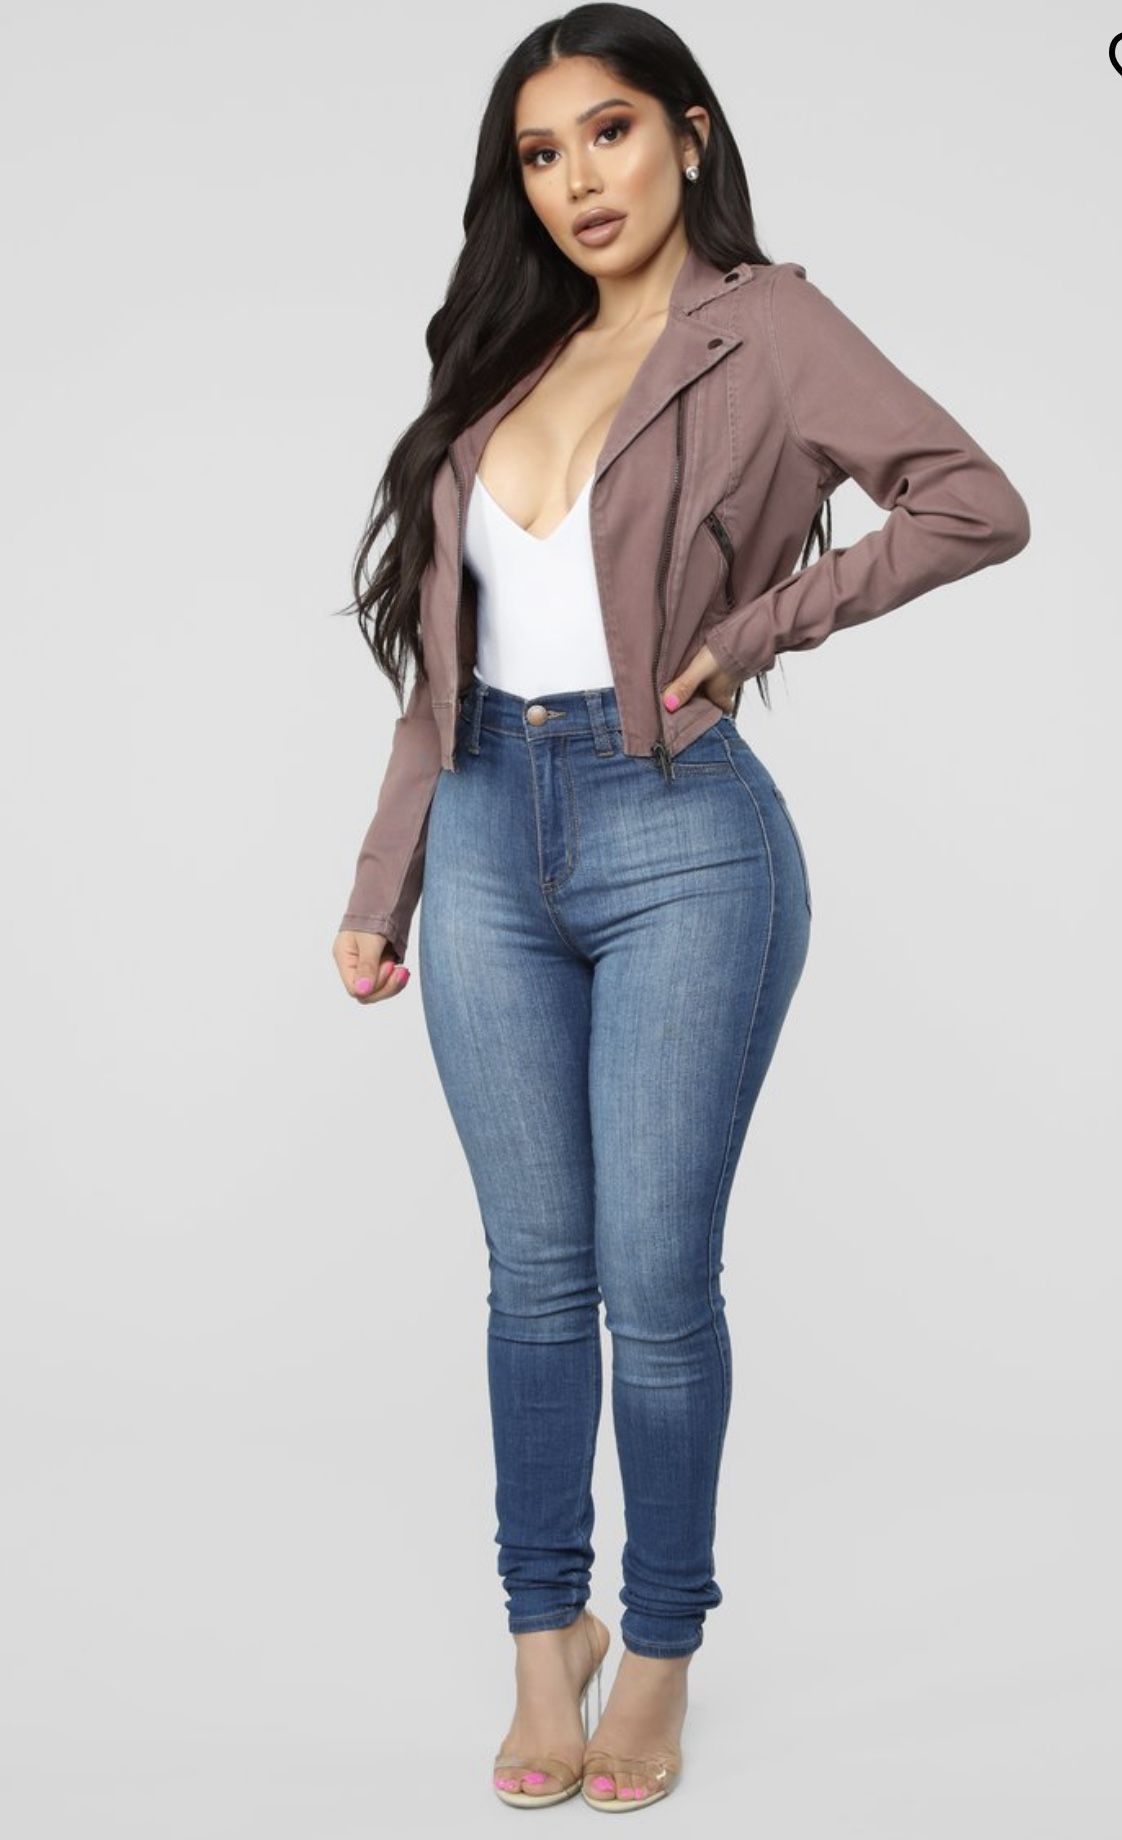 Fashion nova image by Deonna Gibson Best jeans for women